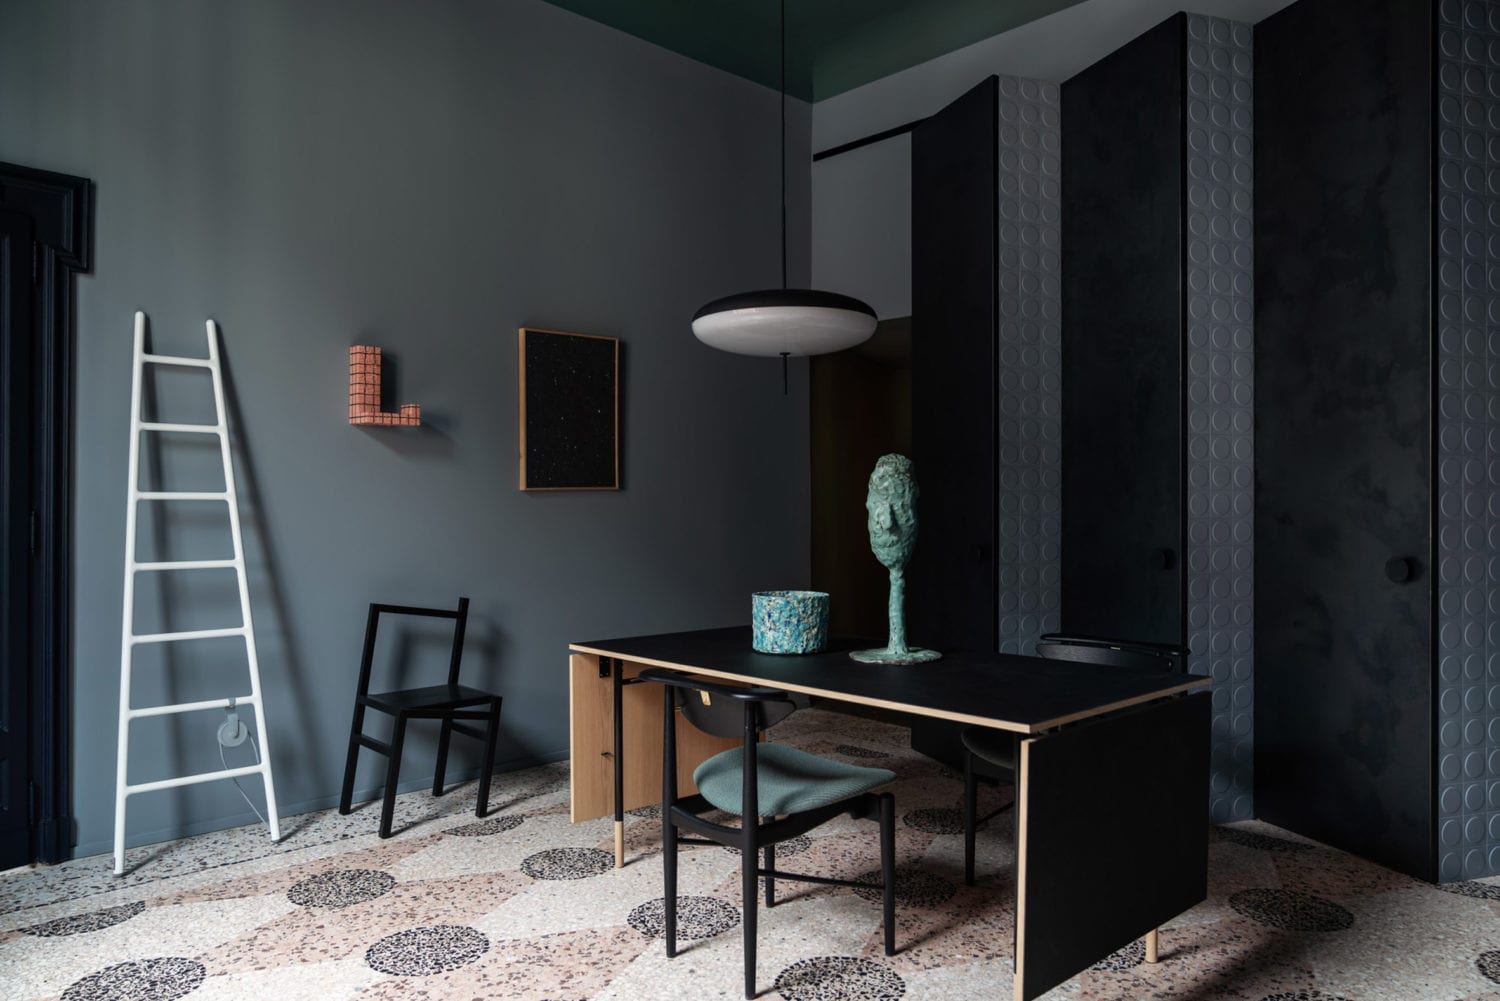 Perfect Darkness Apartment Installation by Elisa Ossino & Josephine Akvama Hoffmeyer at Milan Design Week 2019 | Yellowtrace